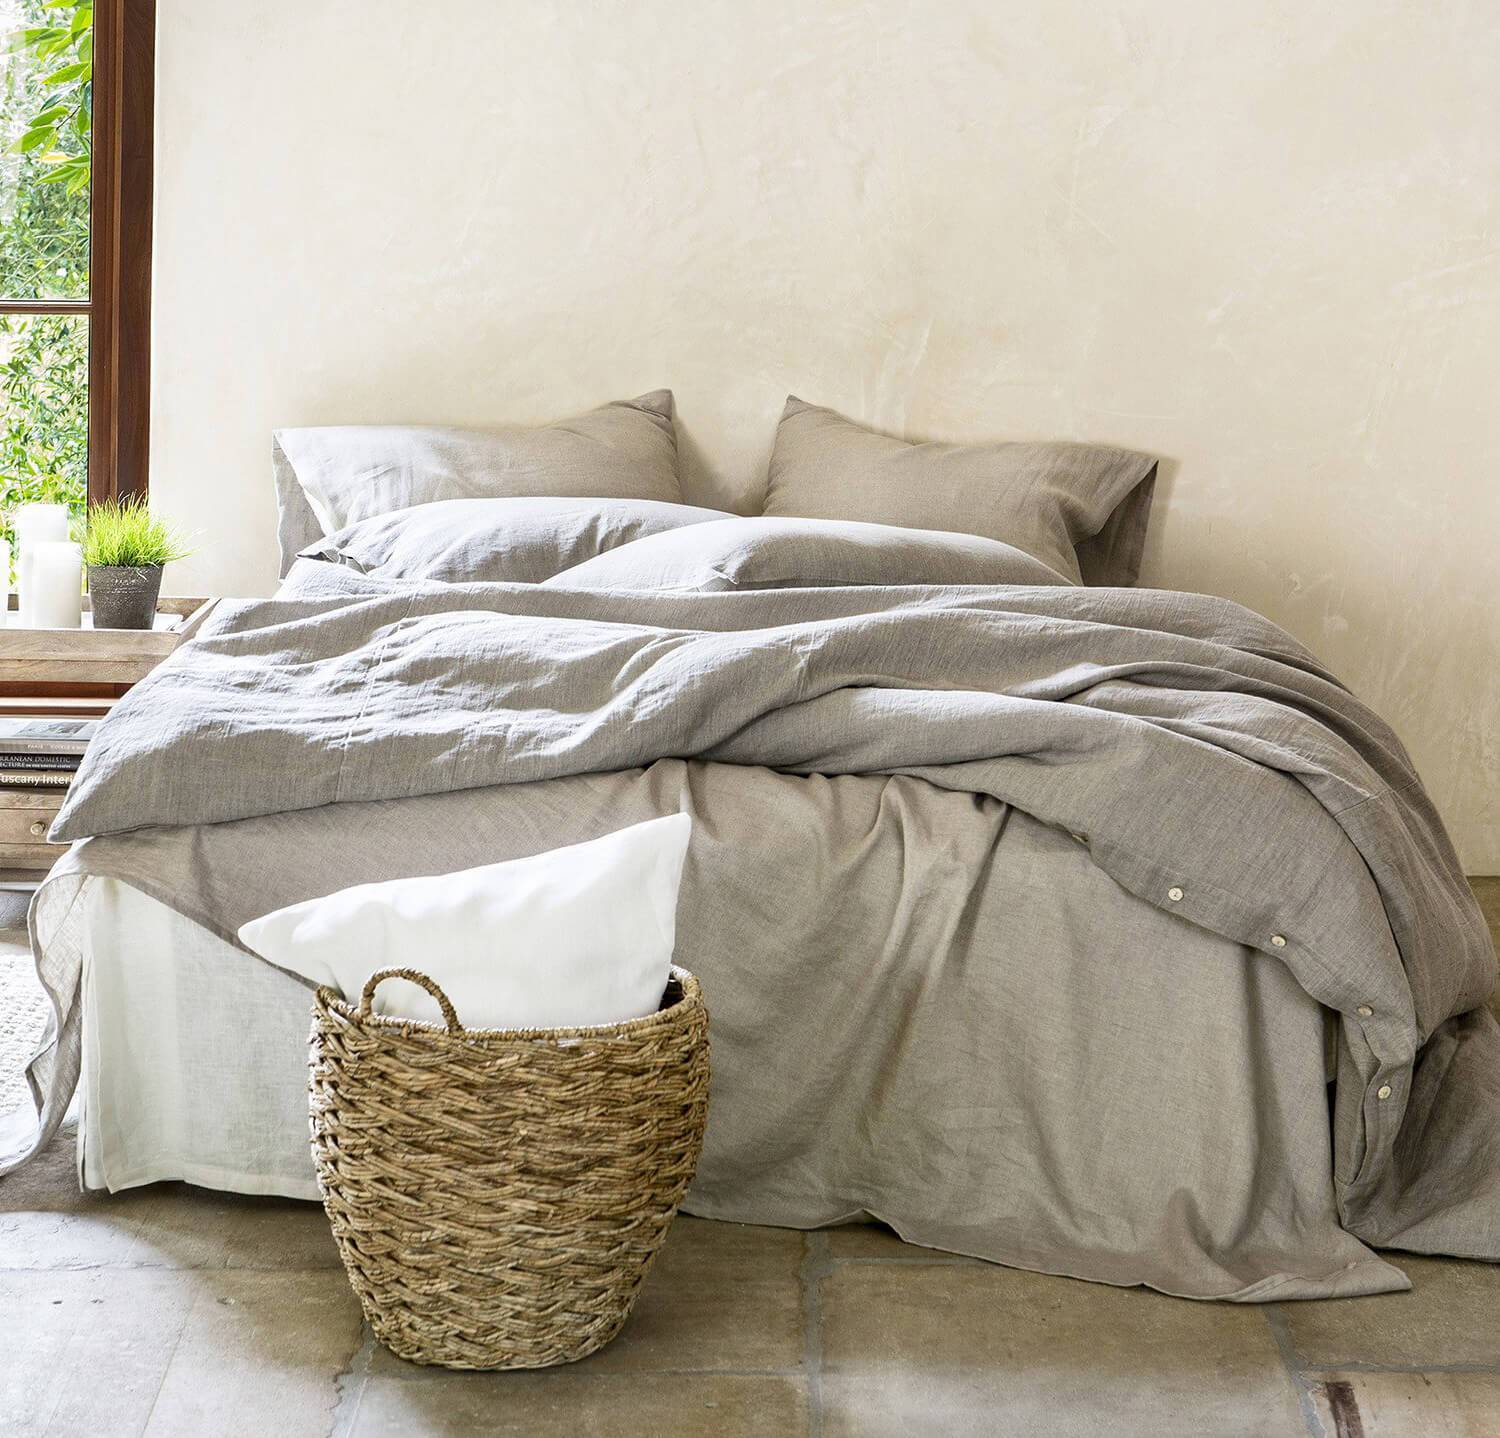 king linen bedding set makeover by rough linen